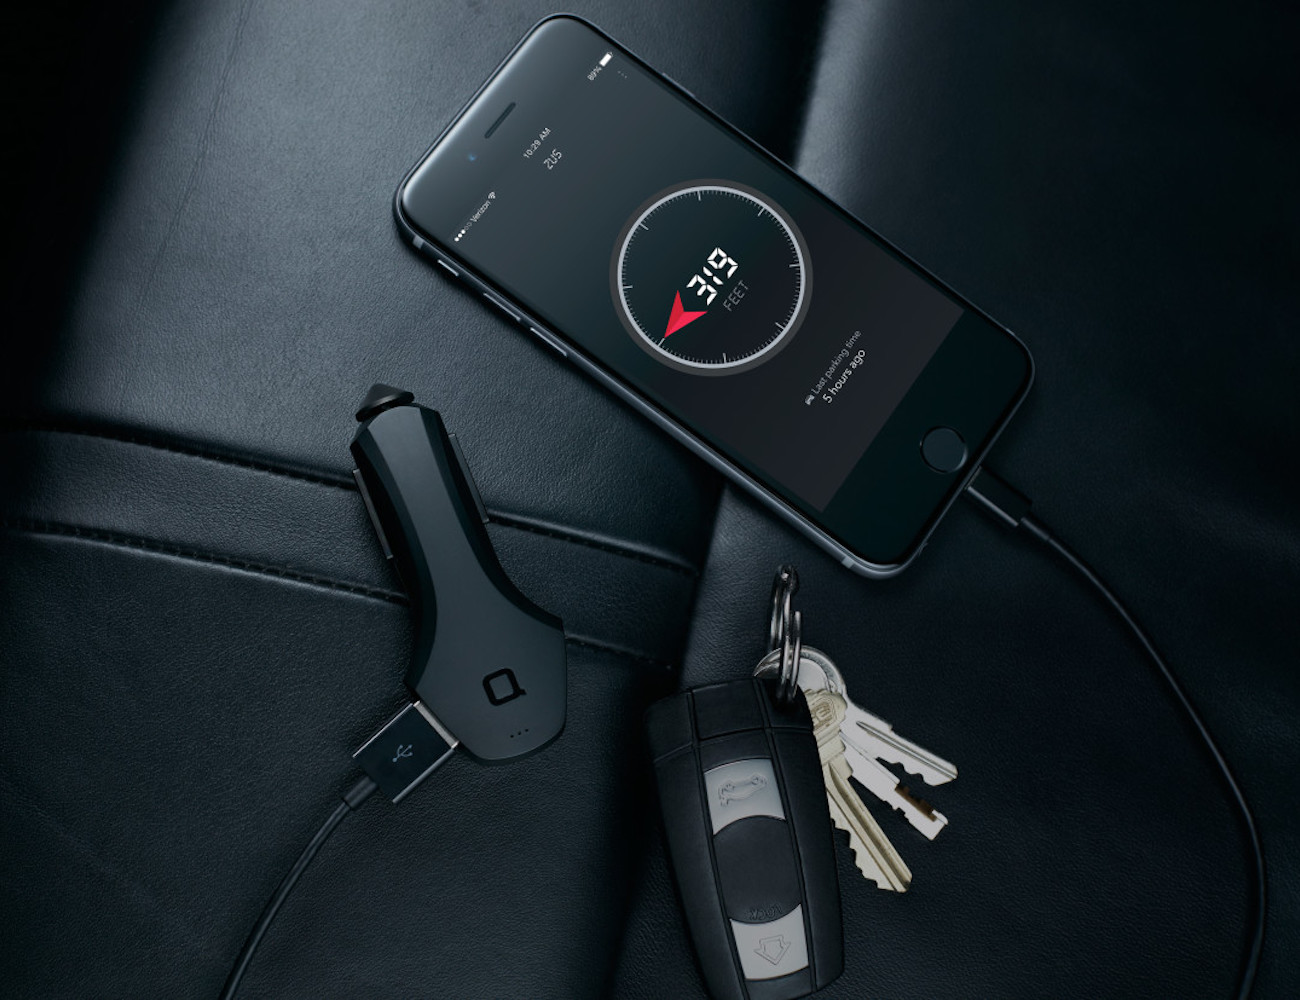 ZUS Smart USB Car Charger